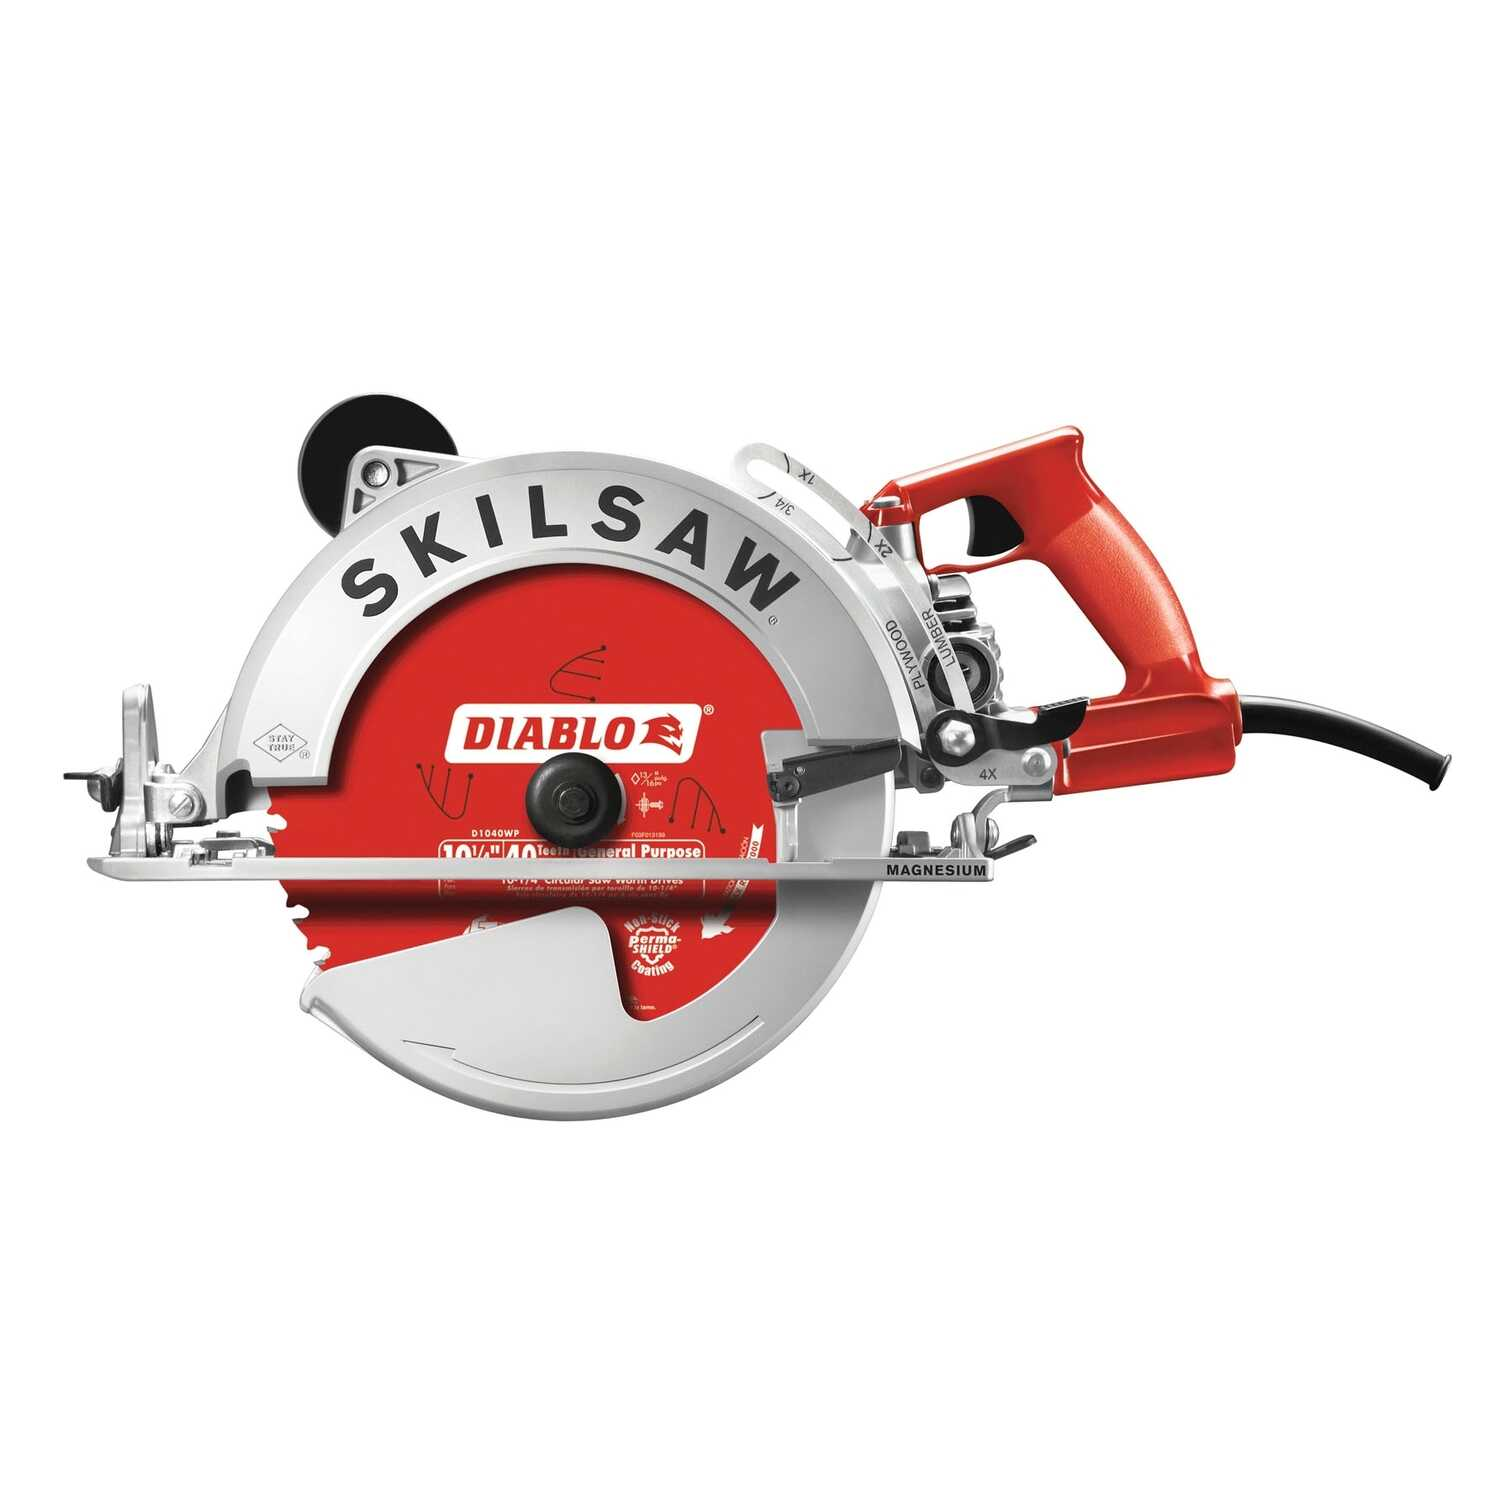 SKILSAW  SAWSQUATCH  10-1/4 in. 15 amps Corded  Worm Drive Circular Saw  5300 rpm